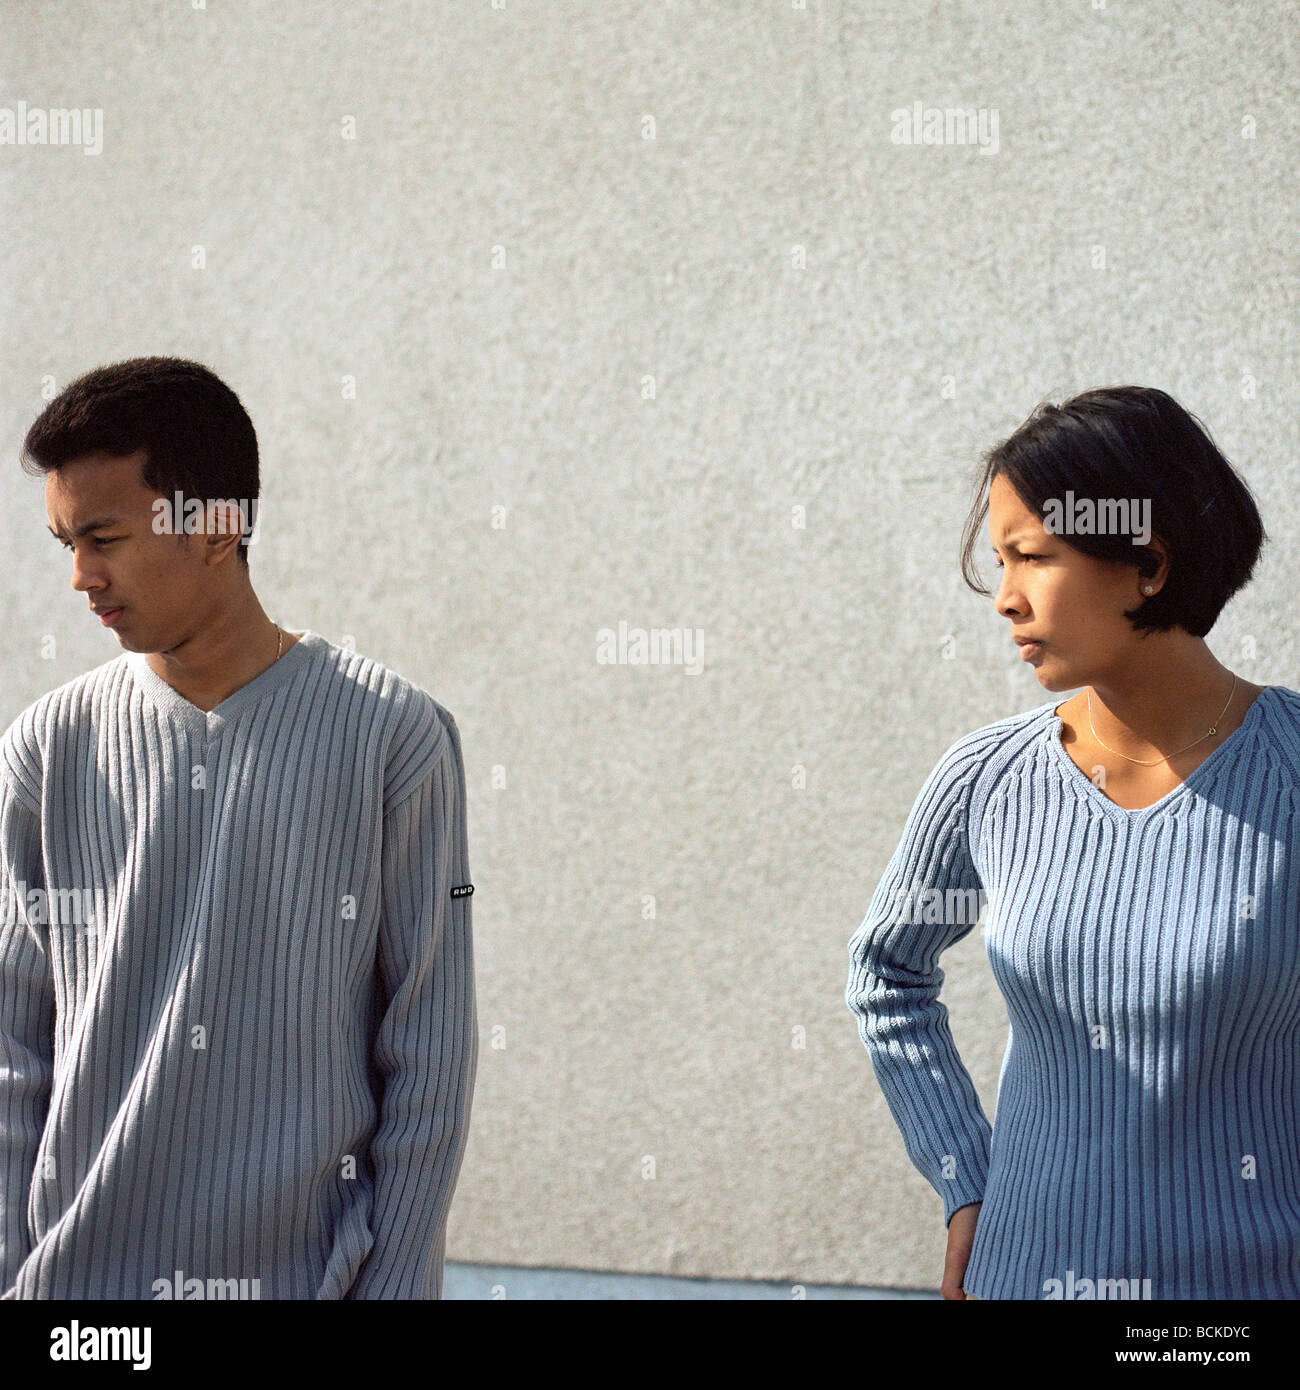 Couple standing apart in front of wall - Stock Image